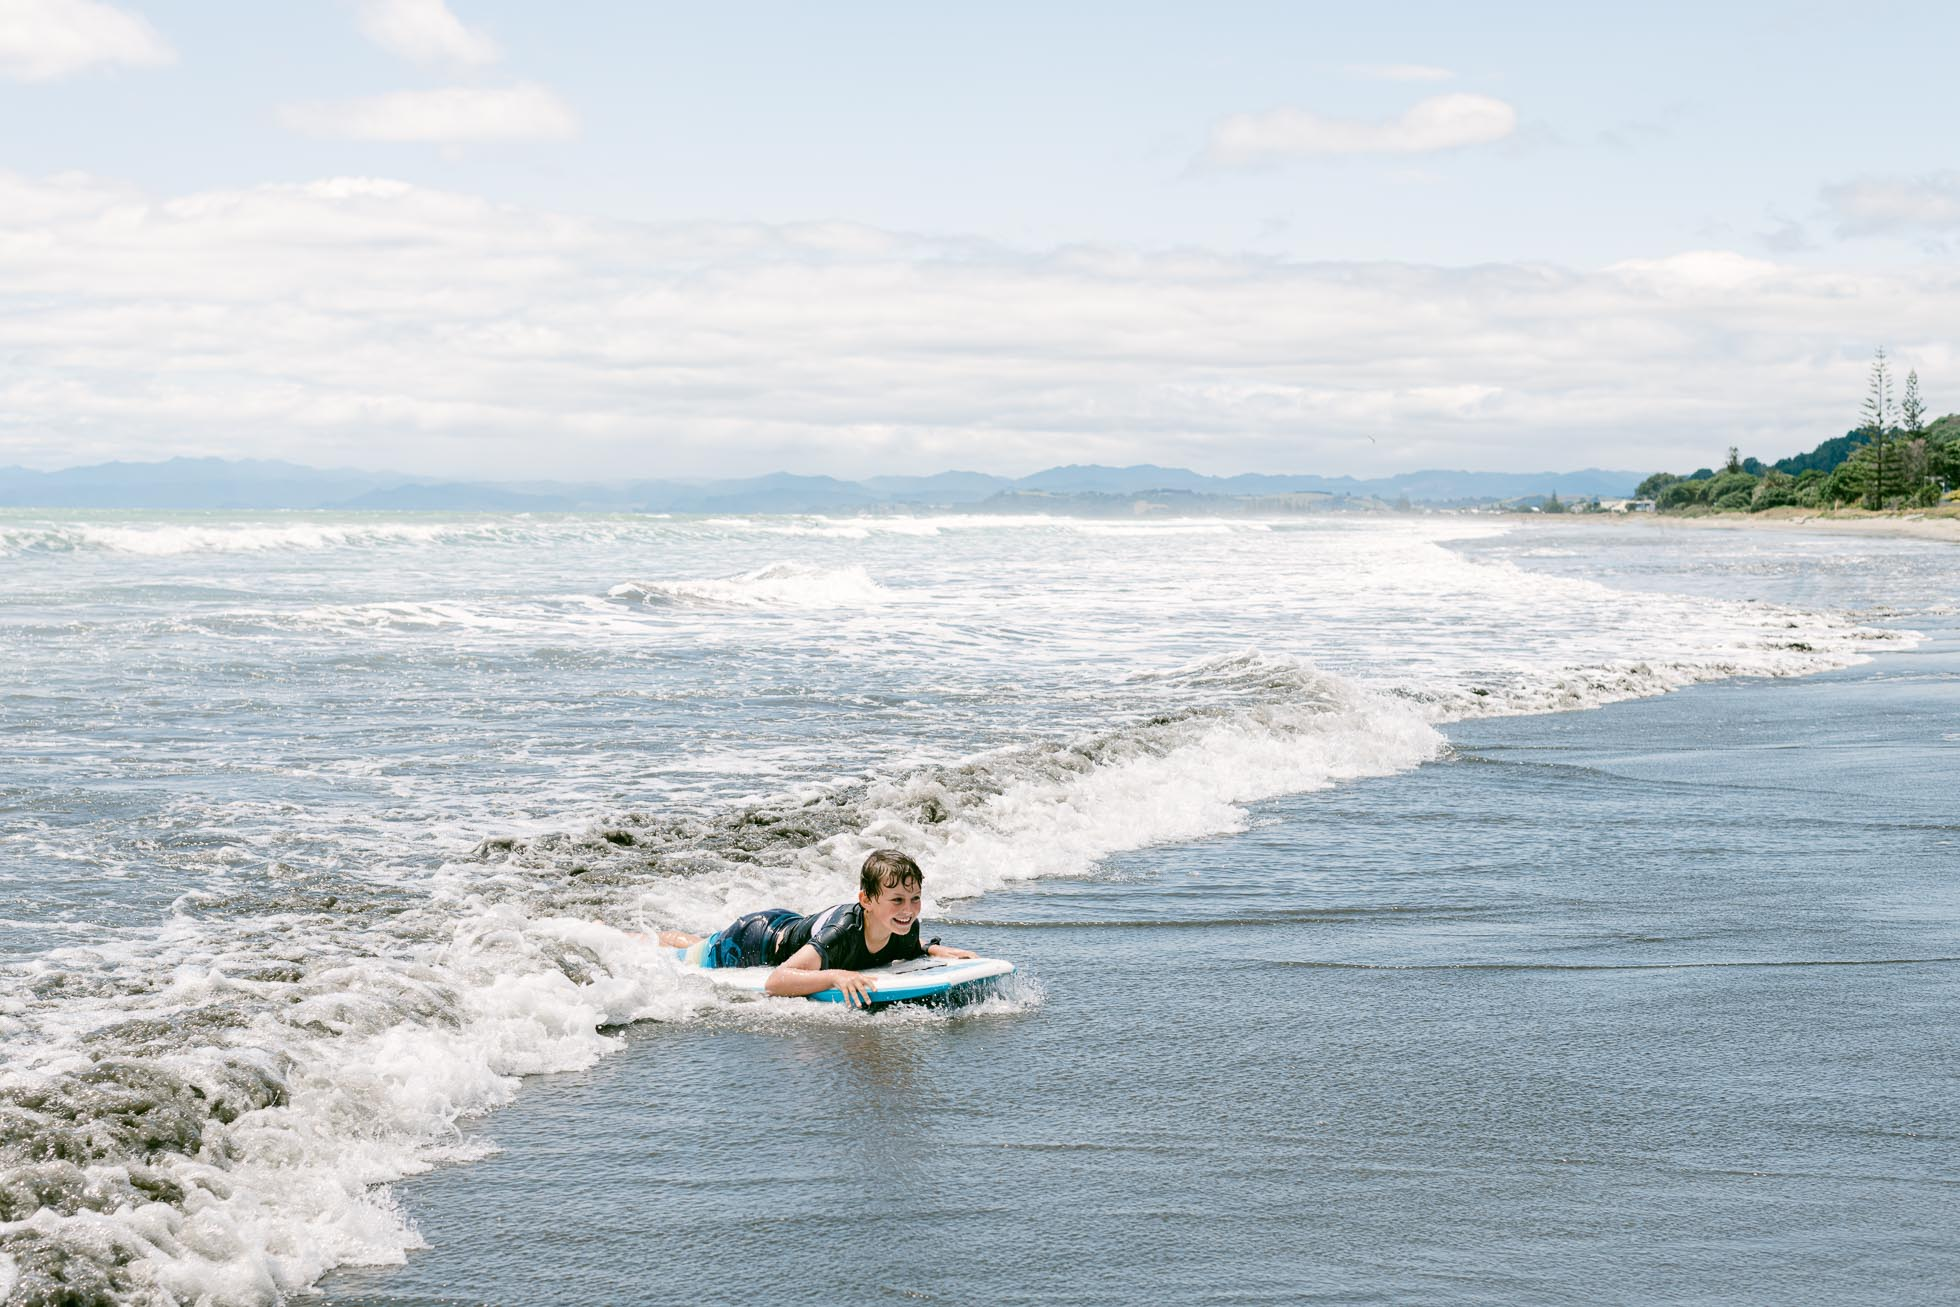 boy boogie boarding at Ohope Beach, New Zealand